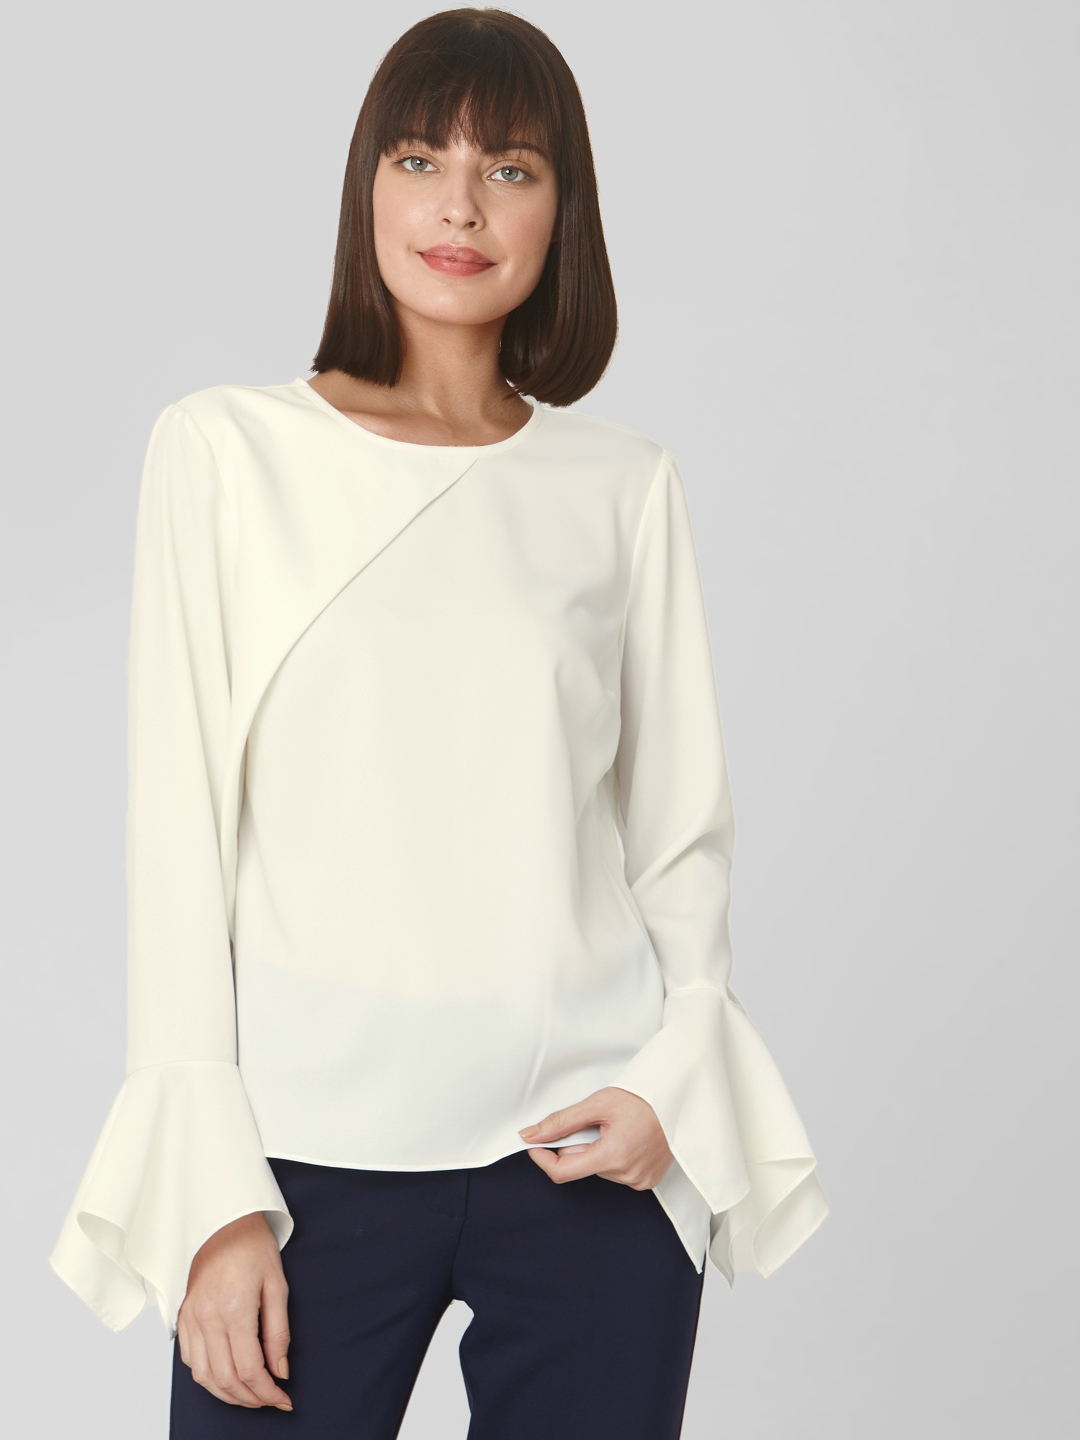 Vero Moda Women White Solid Top With Bell Sleeves